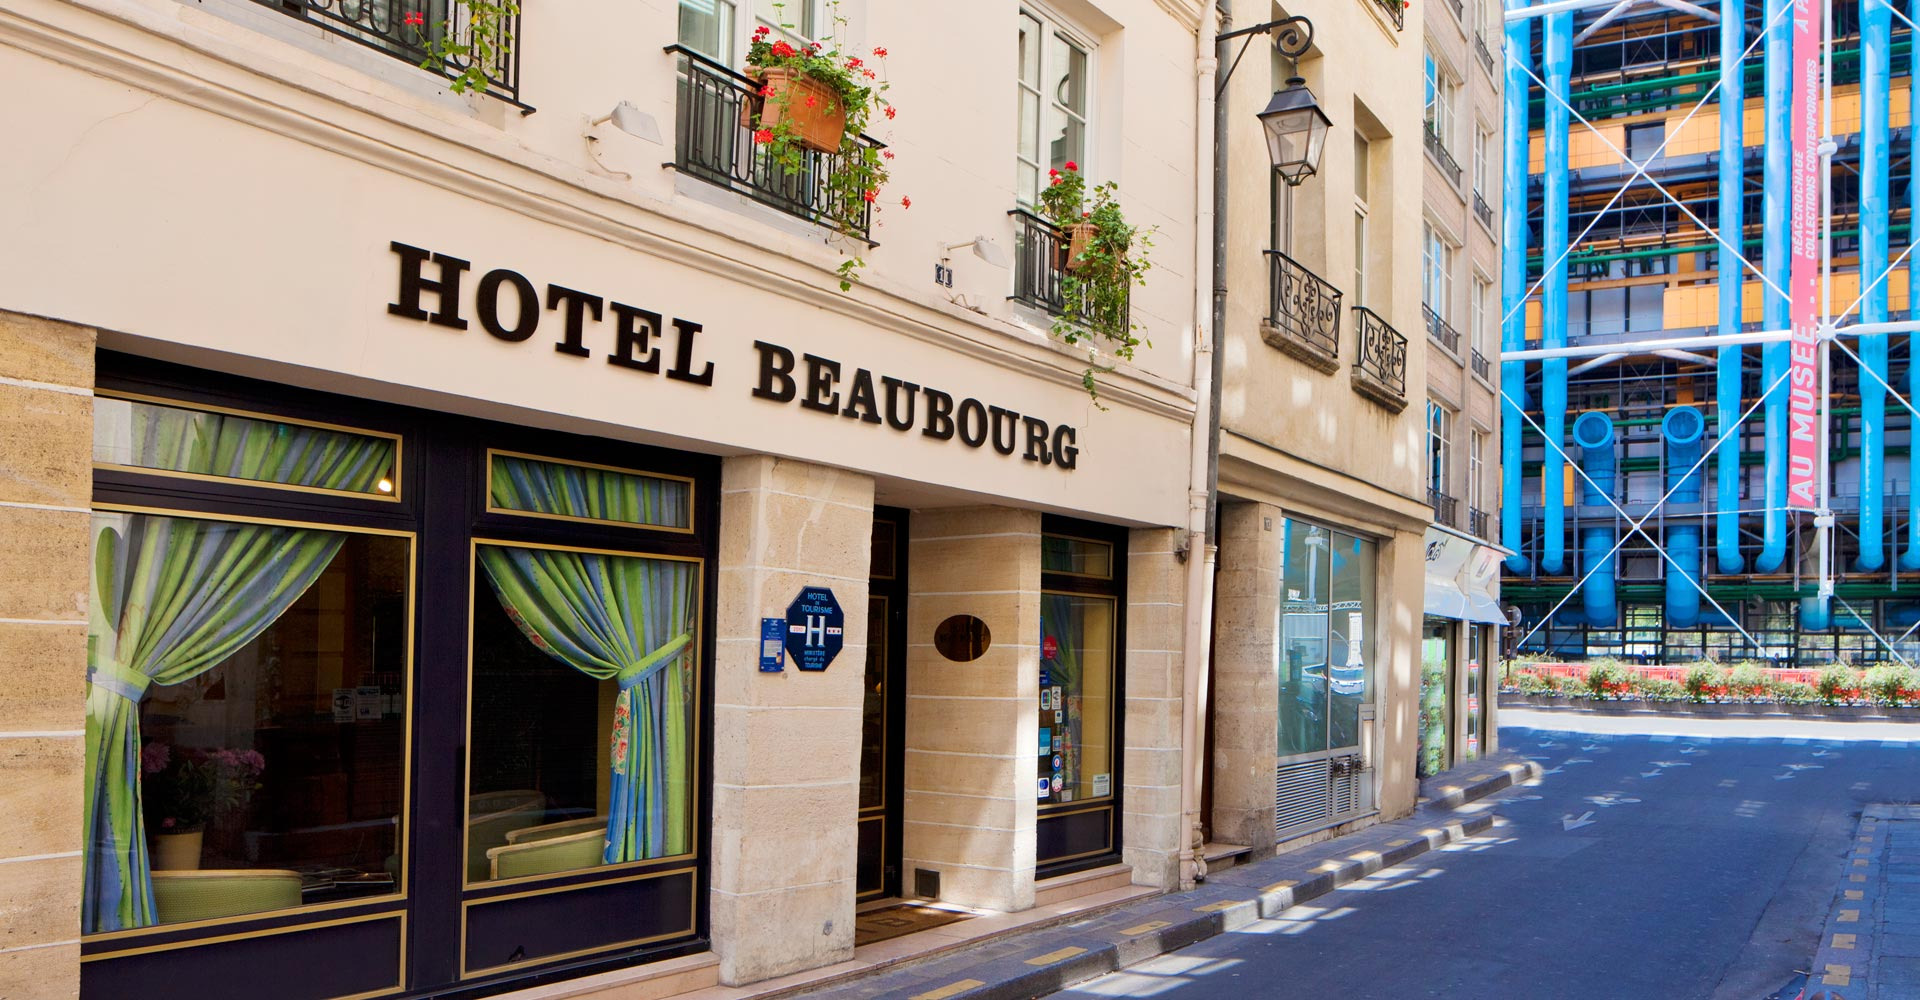 Hotel Beaubourg Paris